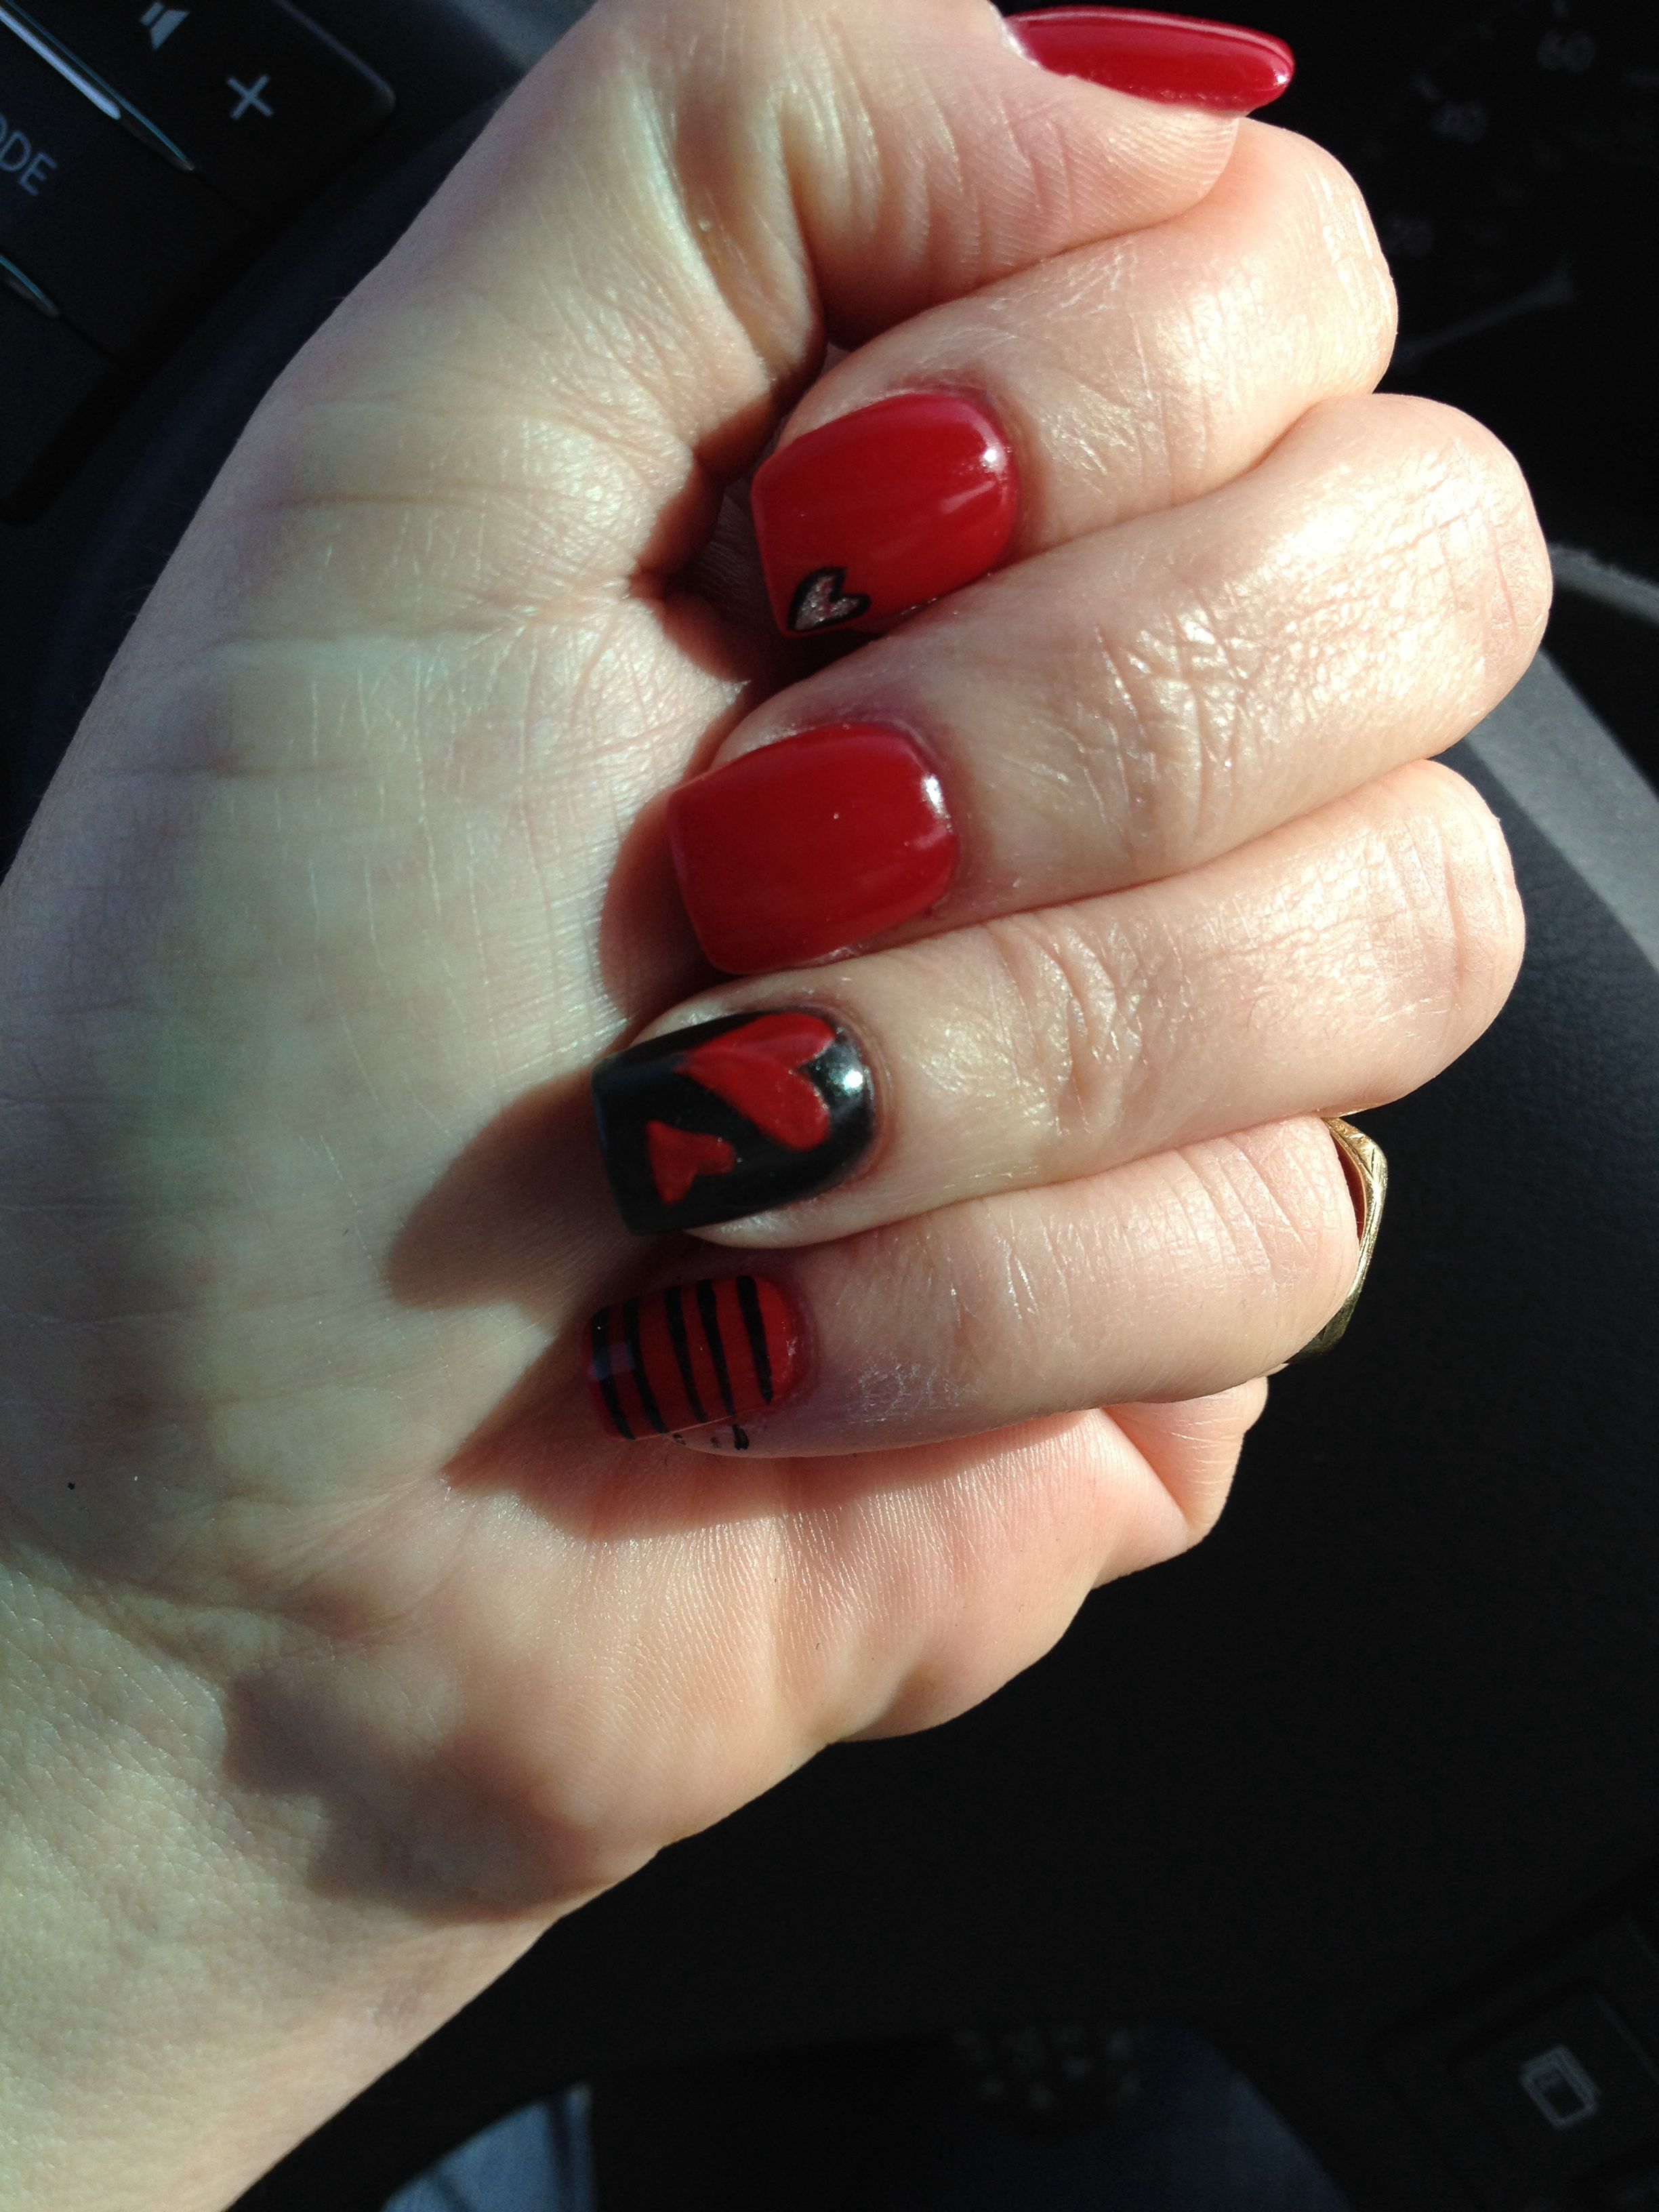 My Valentines Day Nails Courtesy Of Patrcia At Lighten Up Salon In